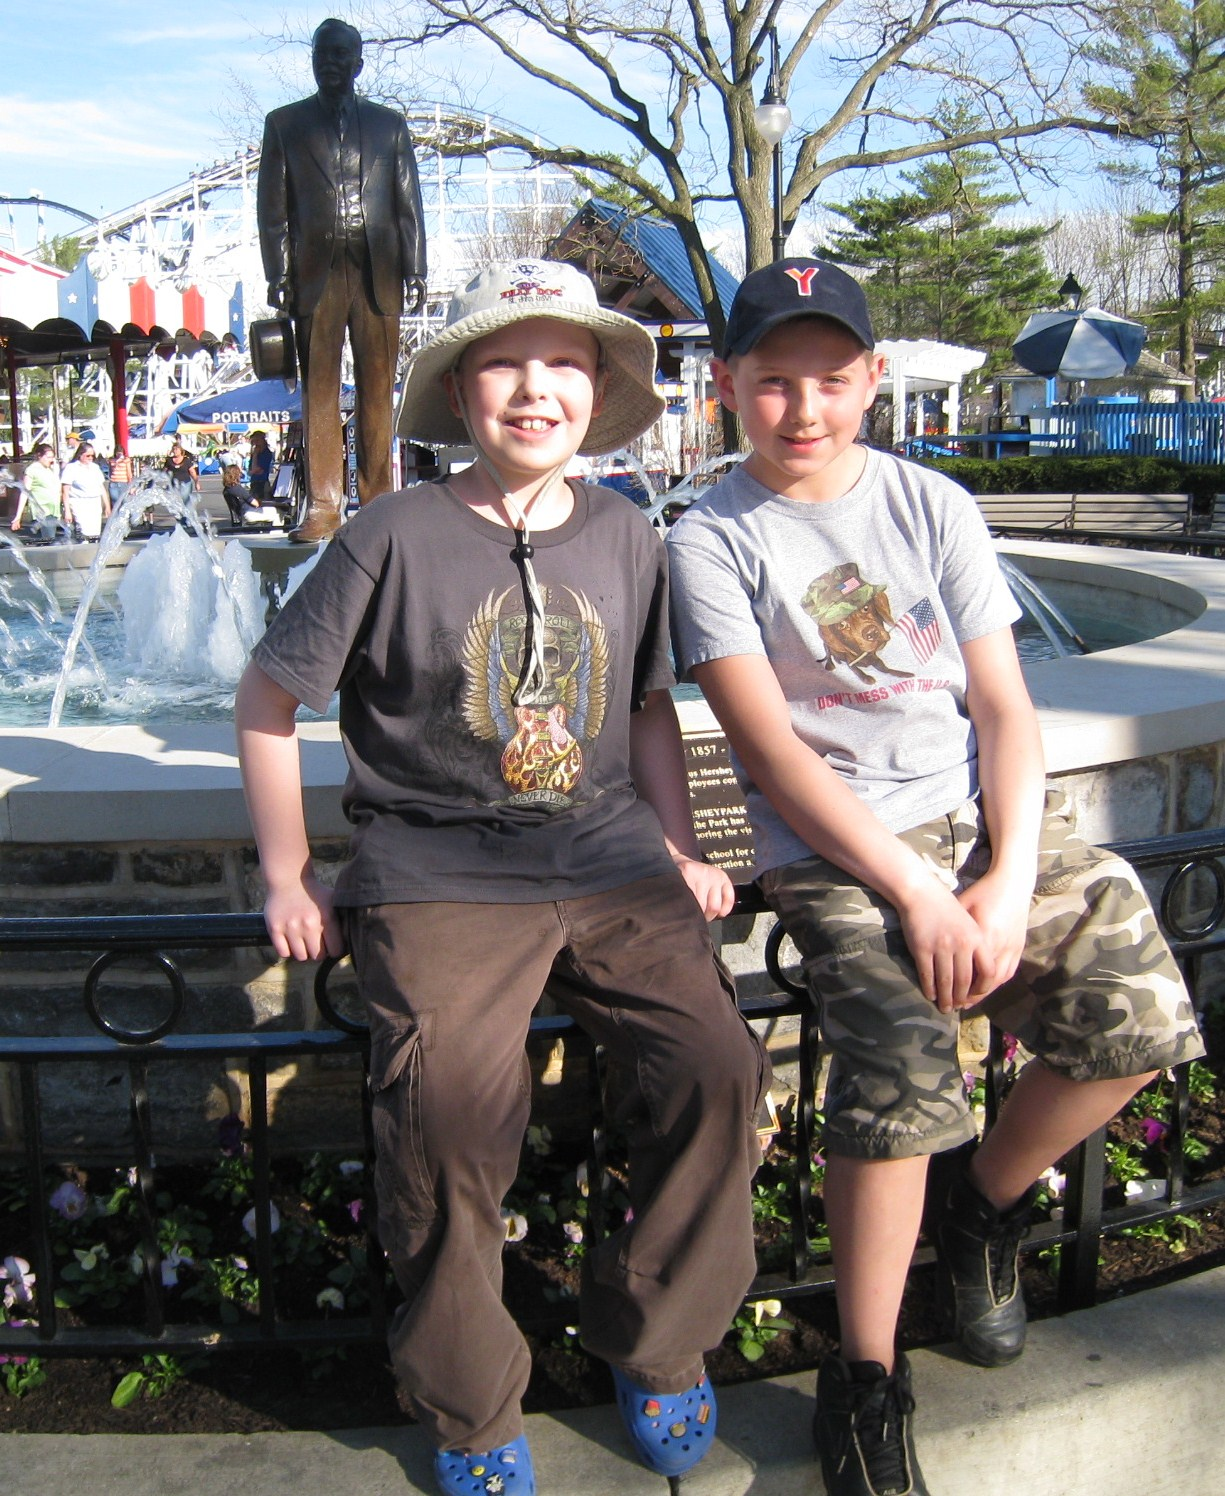 The Dudes chillin at Hershey Park